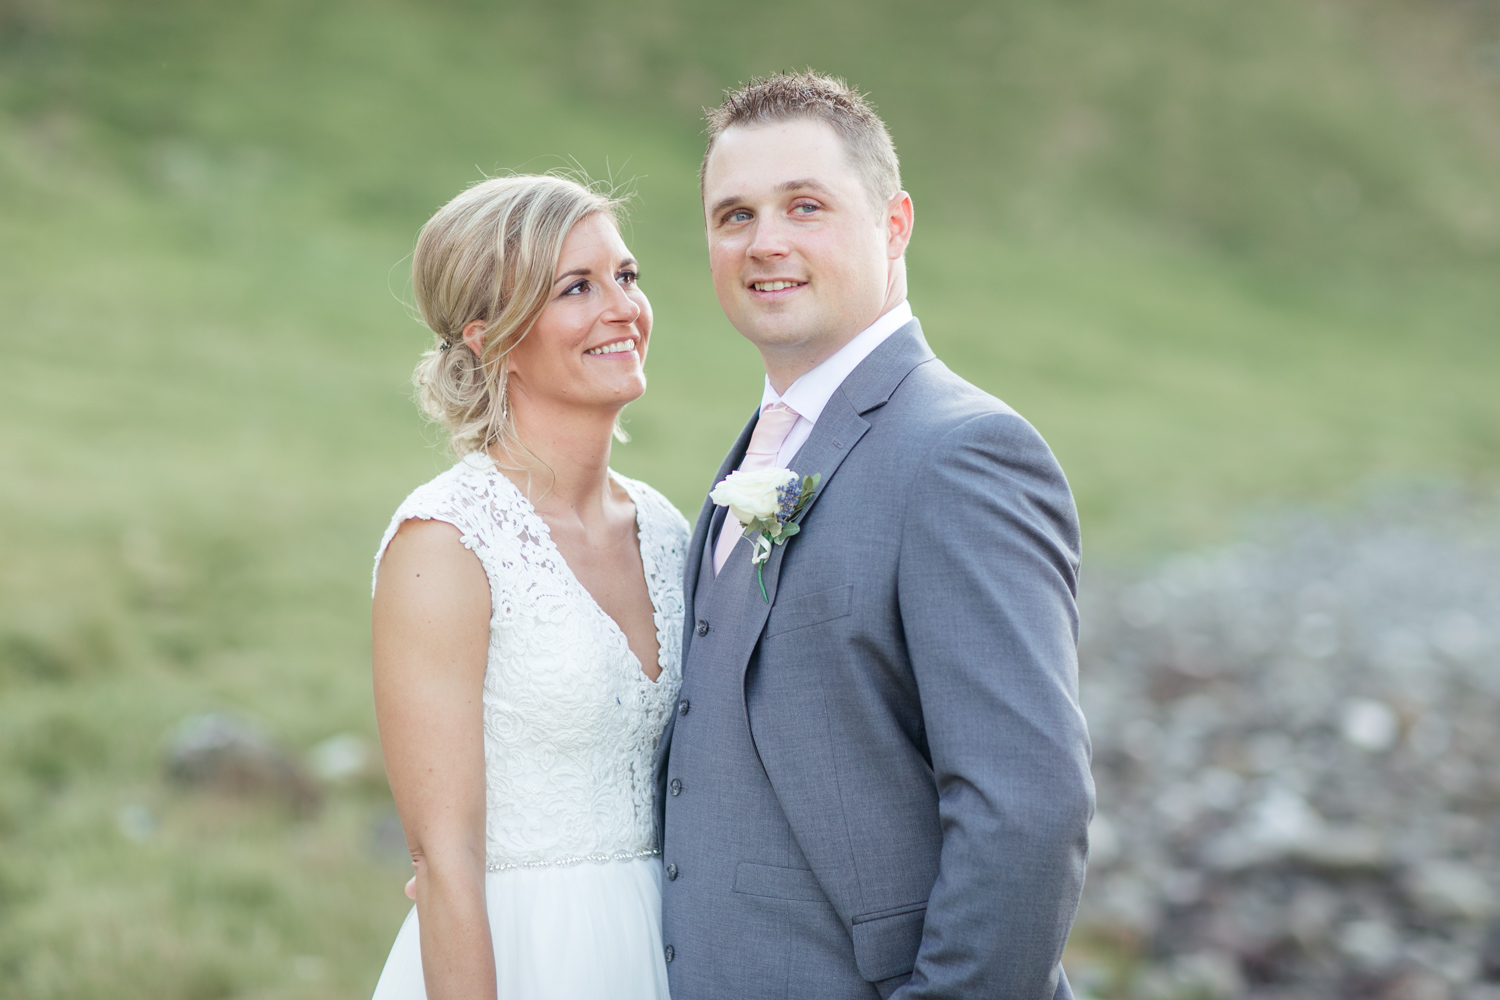 elopement wedding photographs after the ceremony